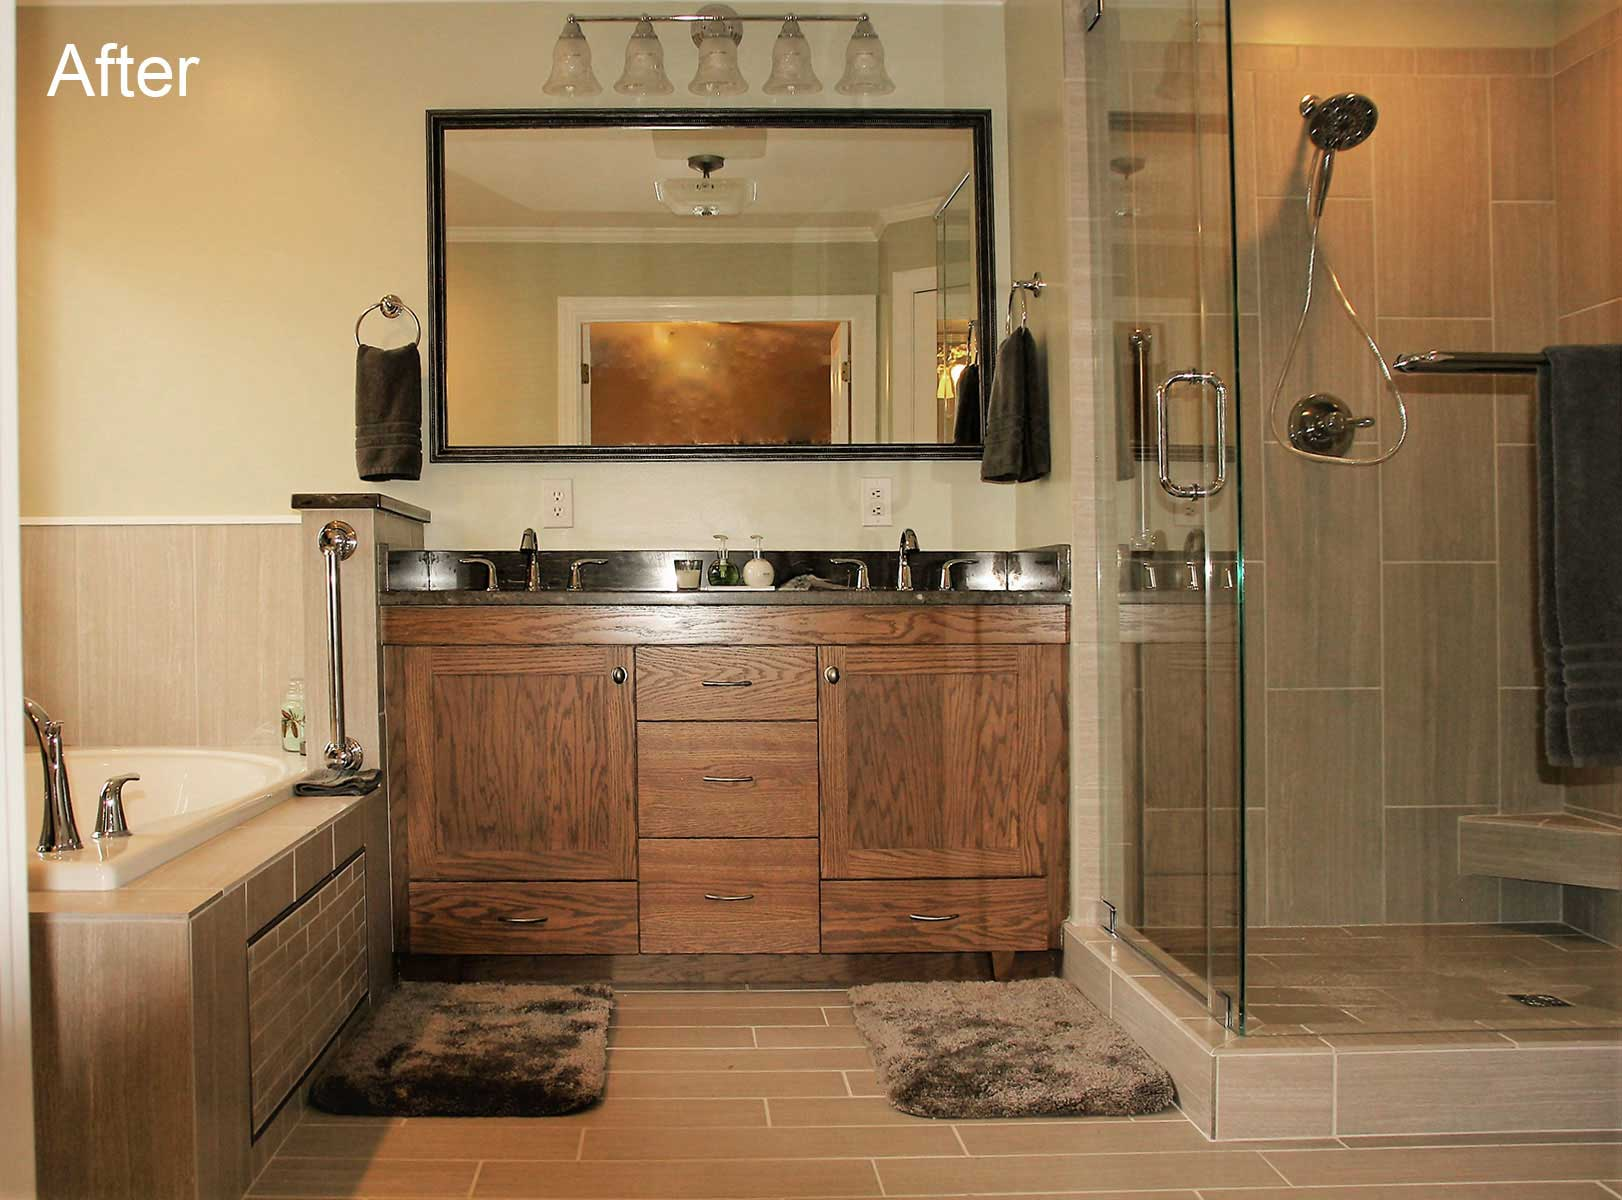 Full view into newly remodeled bathroom with natural wood vanity